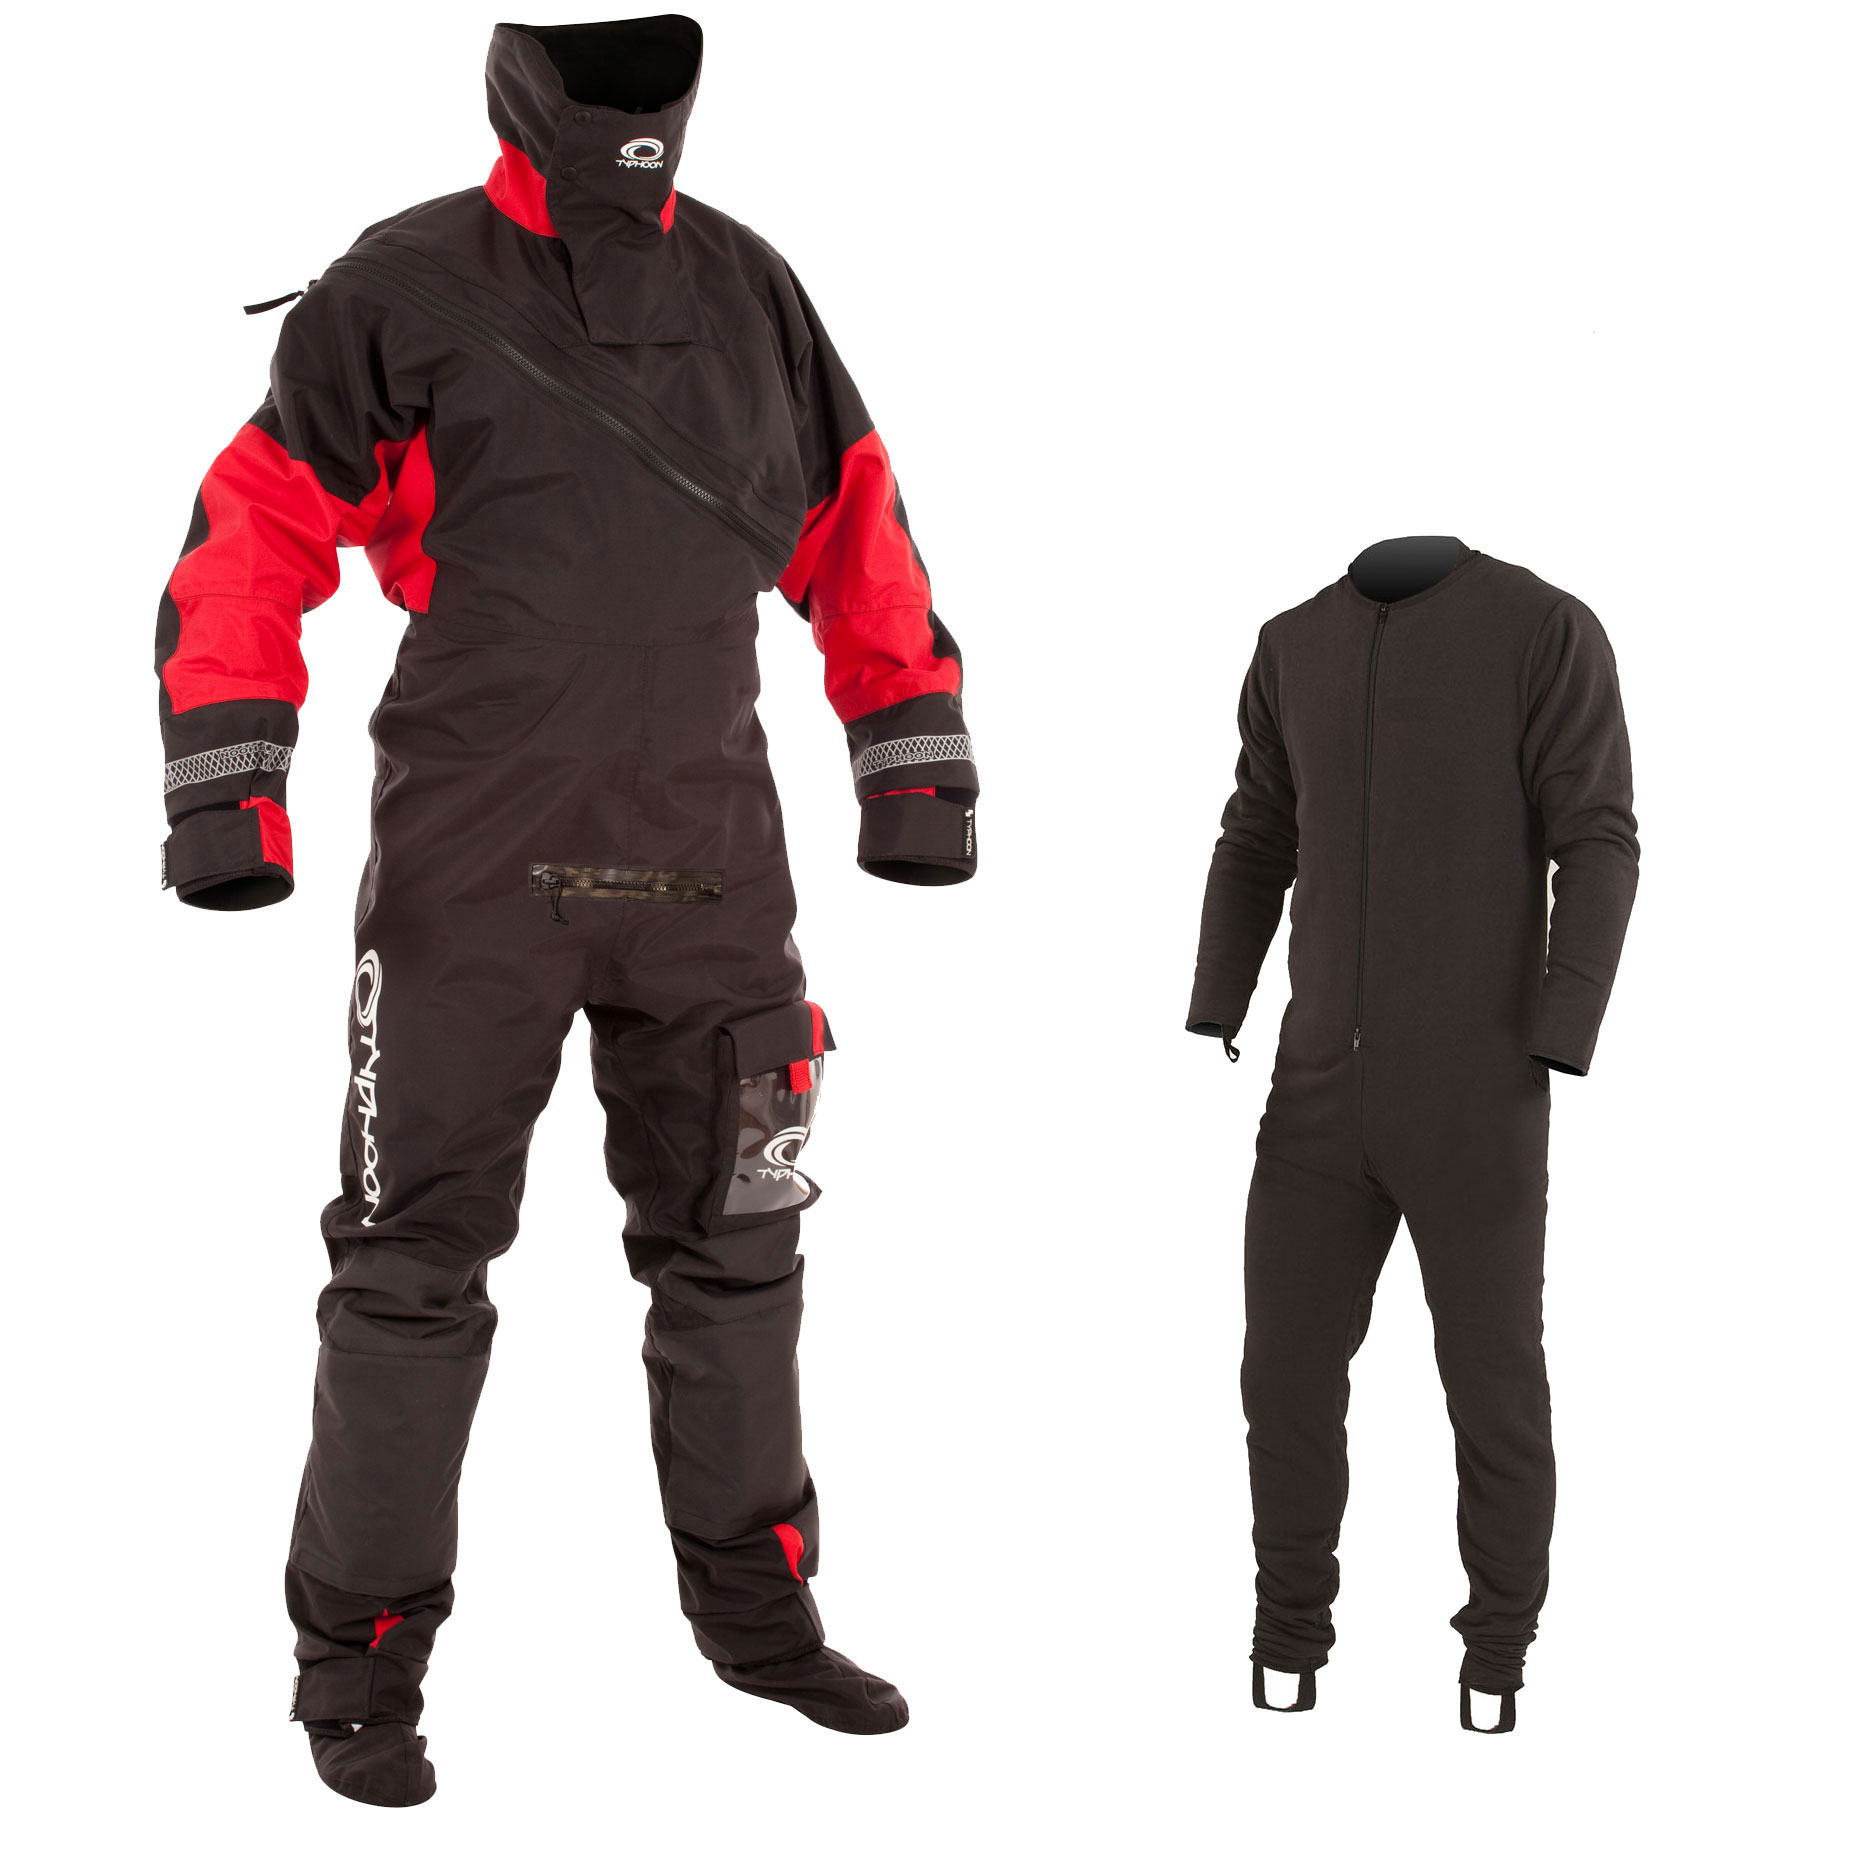 Typhoon Max B Drysuit Black/Red c/w Con Zip 2018 - Incl Undersuit